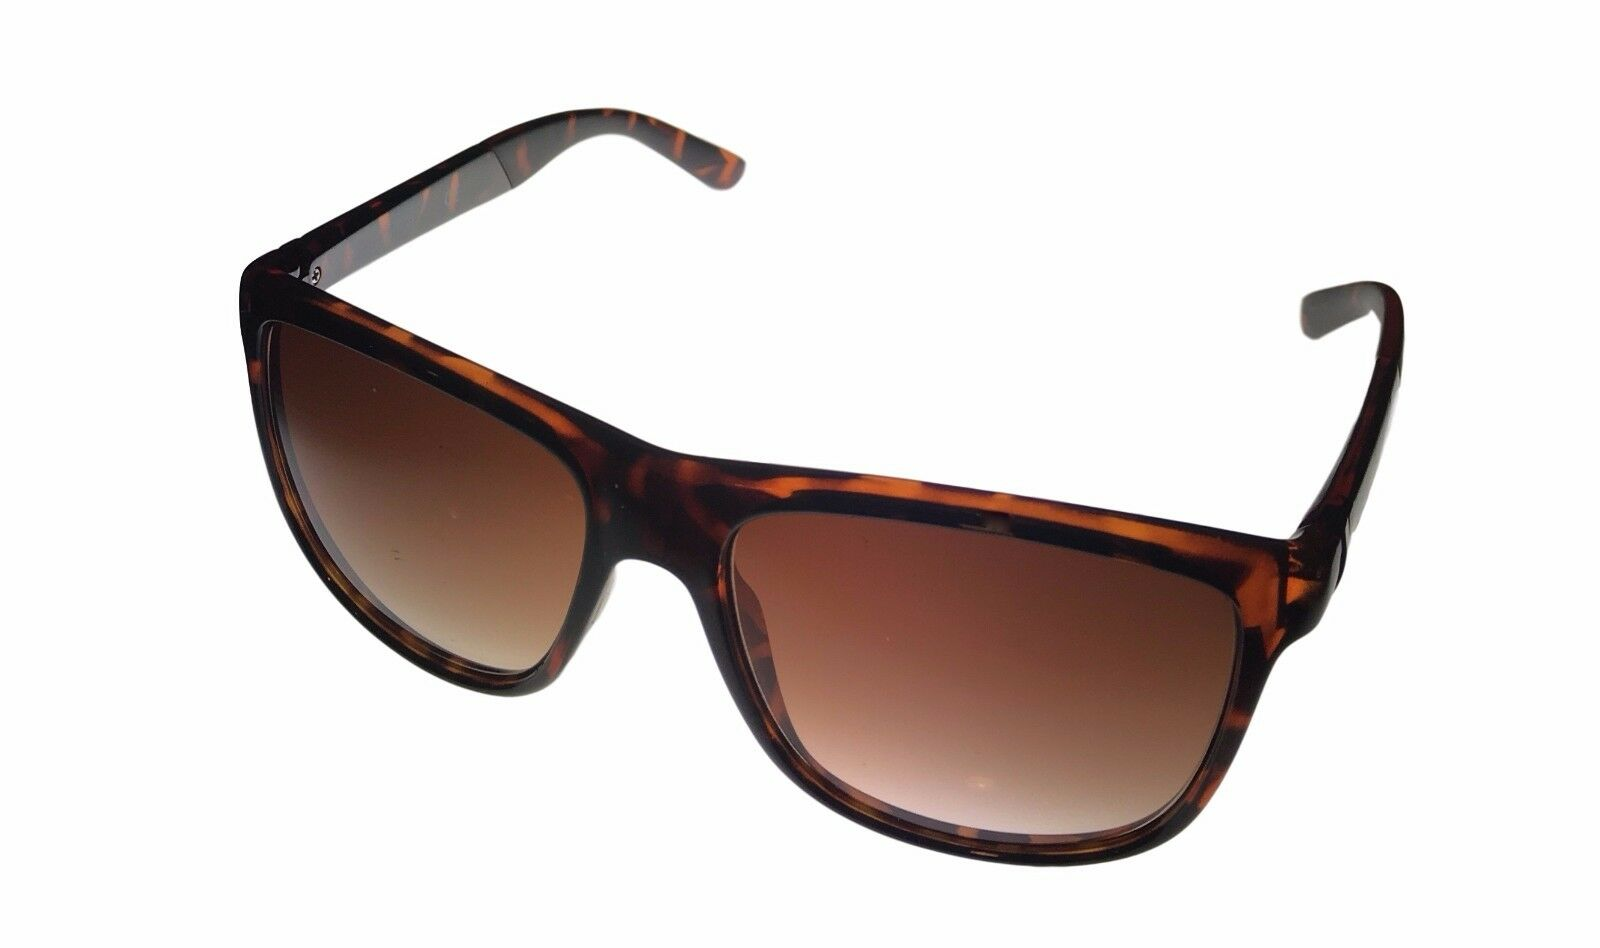 Kenneth Cole Reaction Mens Square Black Sunglass Light Brown